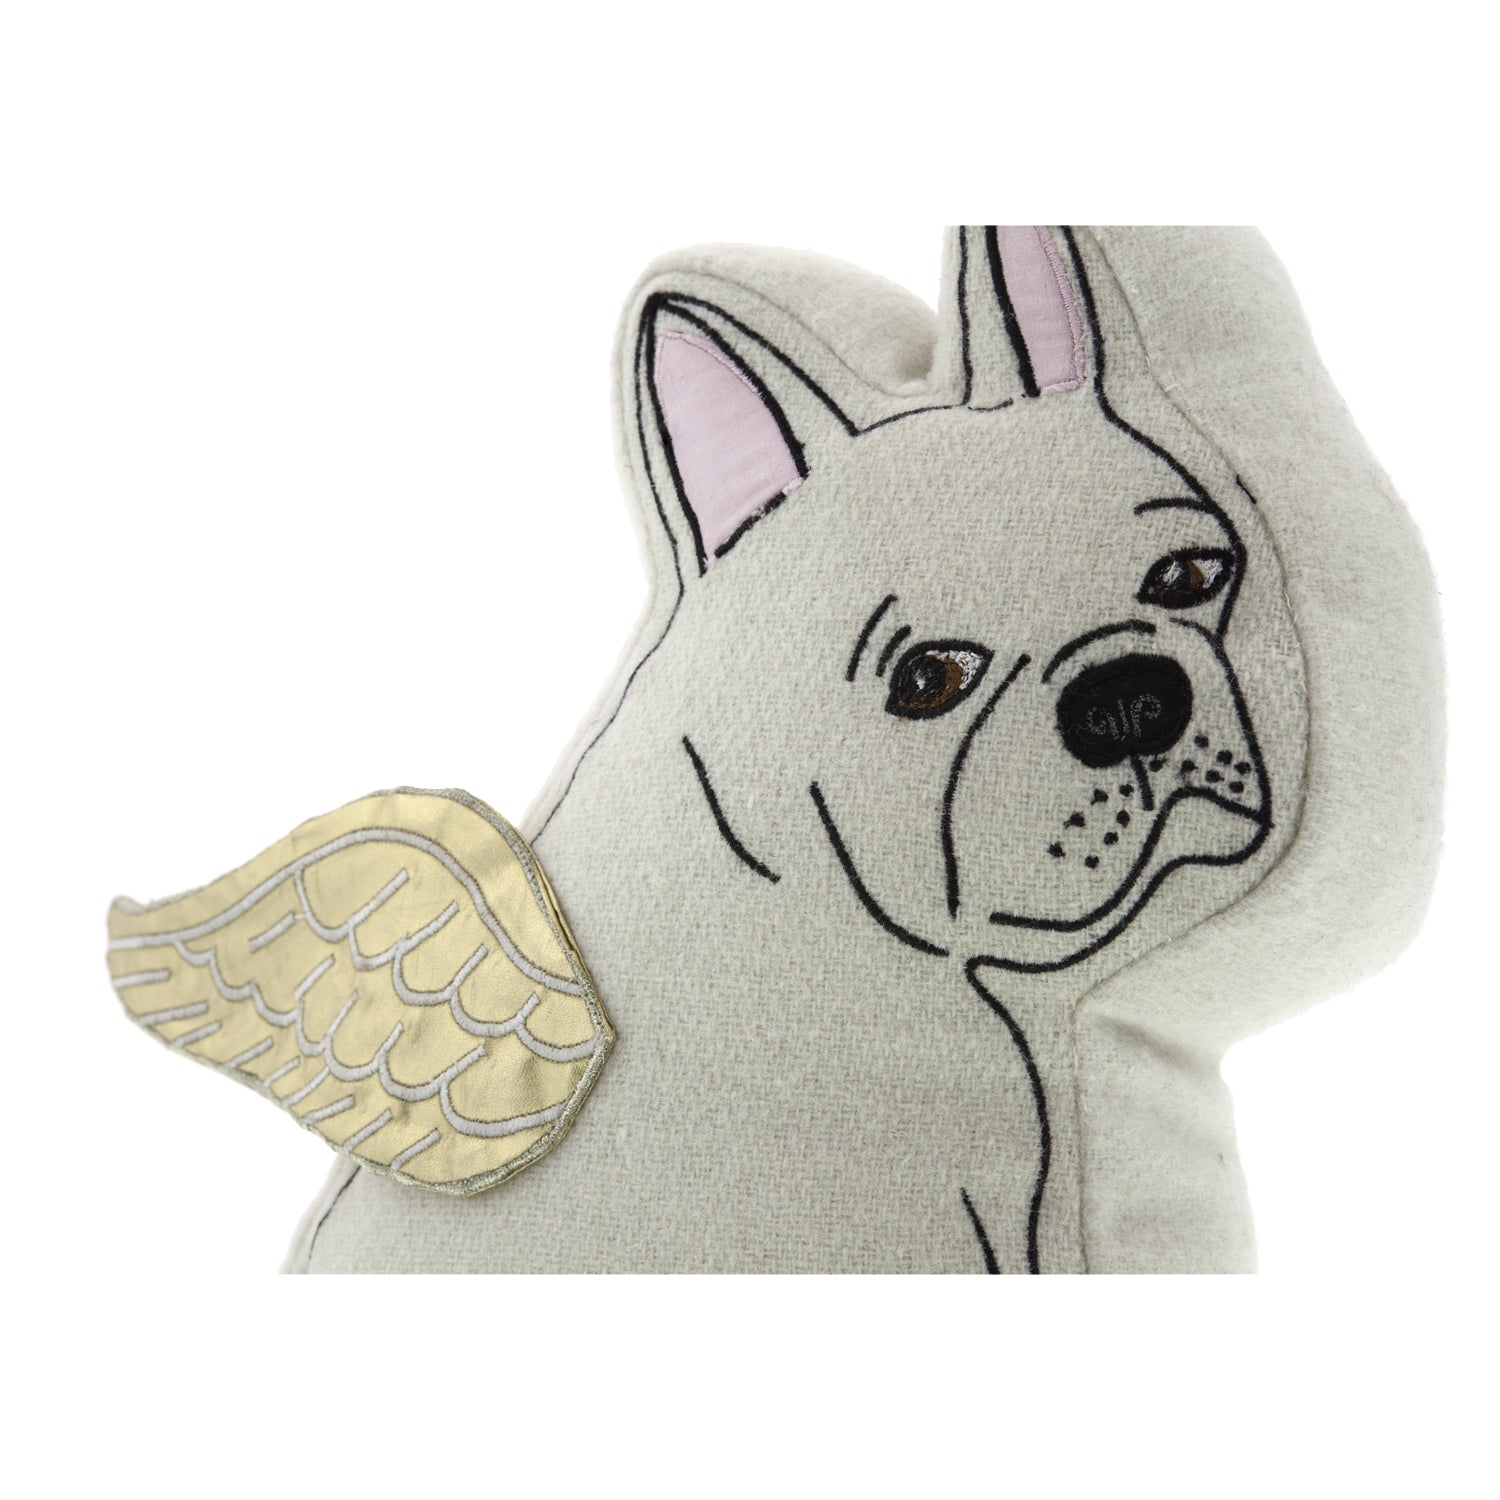 Dog Lover Gifts available at Dog Krazy Gifts – Cream French Bulldog Cushion – Gorgeously detailed and handcrafted luxury cushions part of the French Bulldog Range available from Dog Krazy Gifts